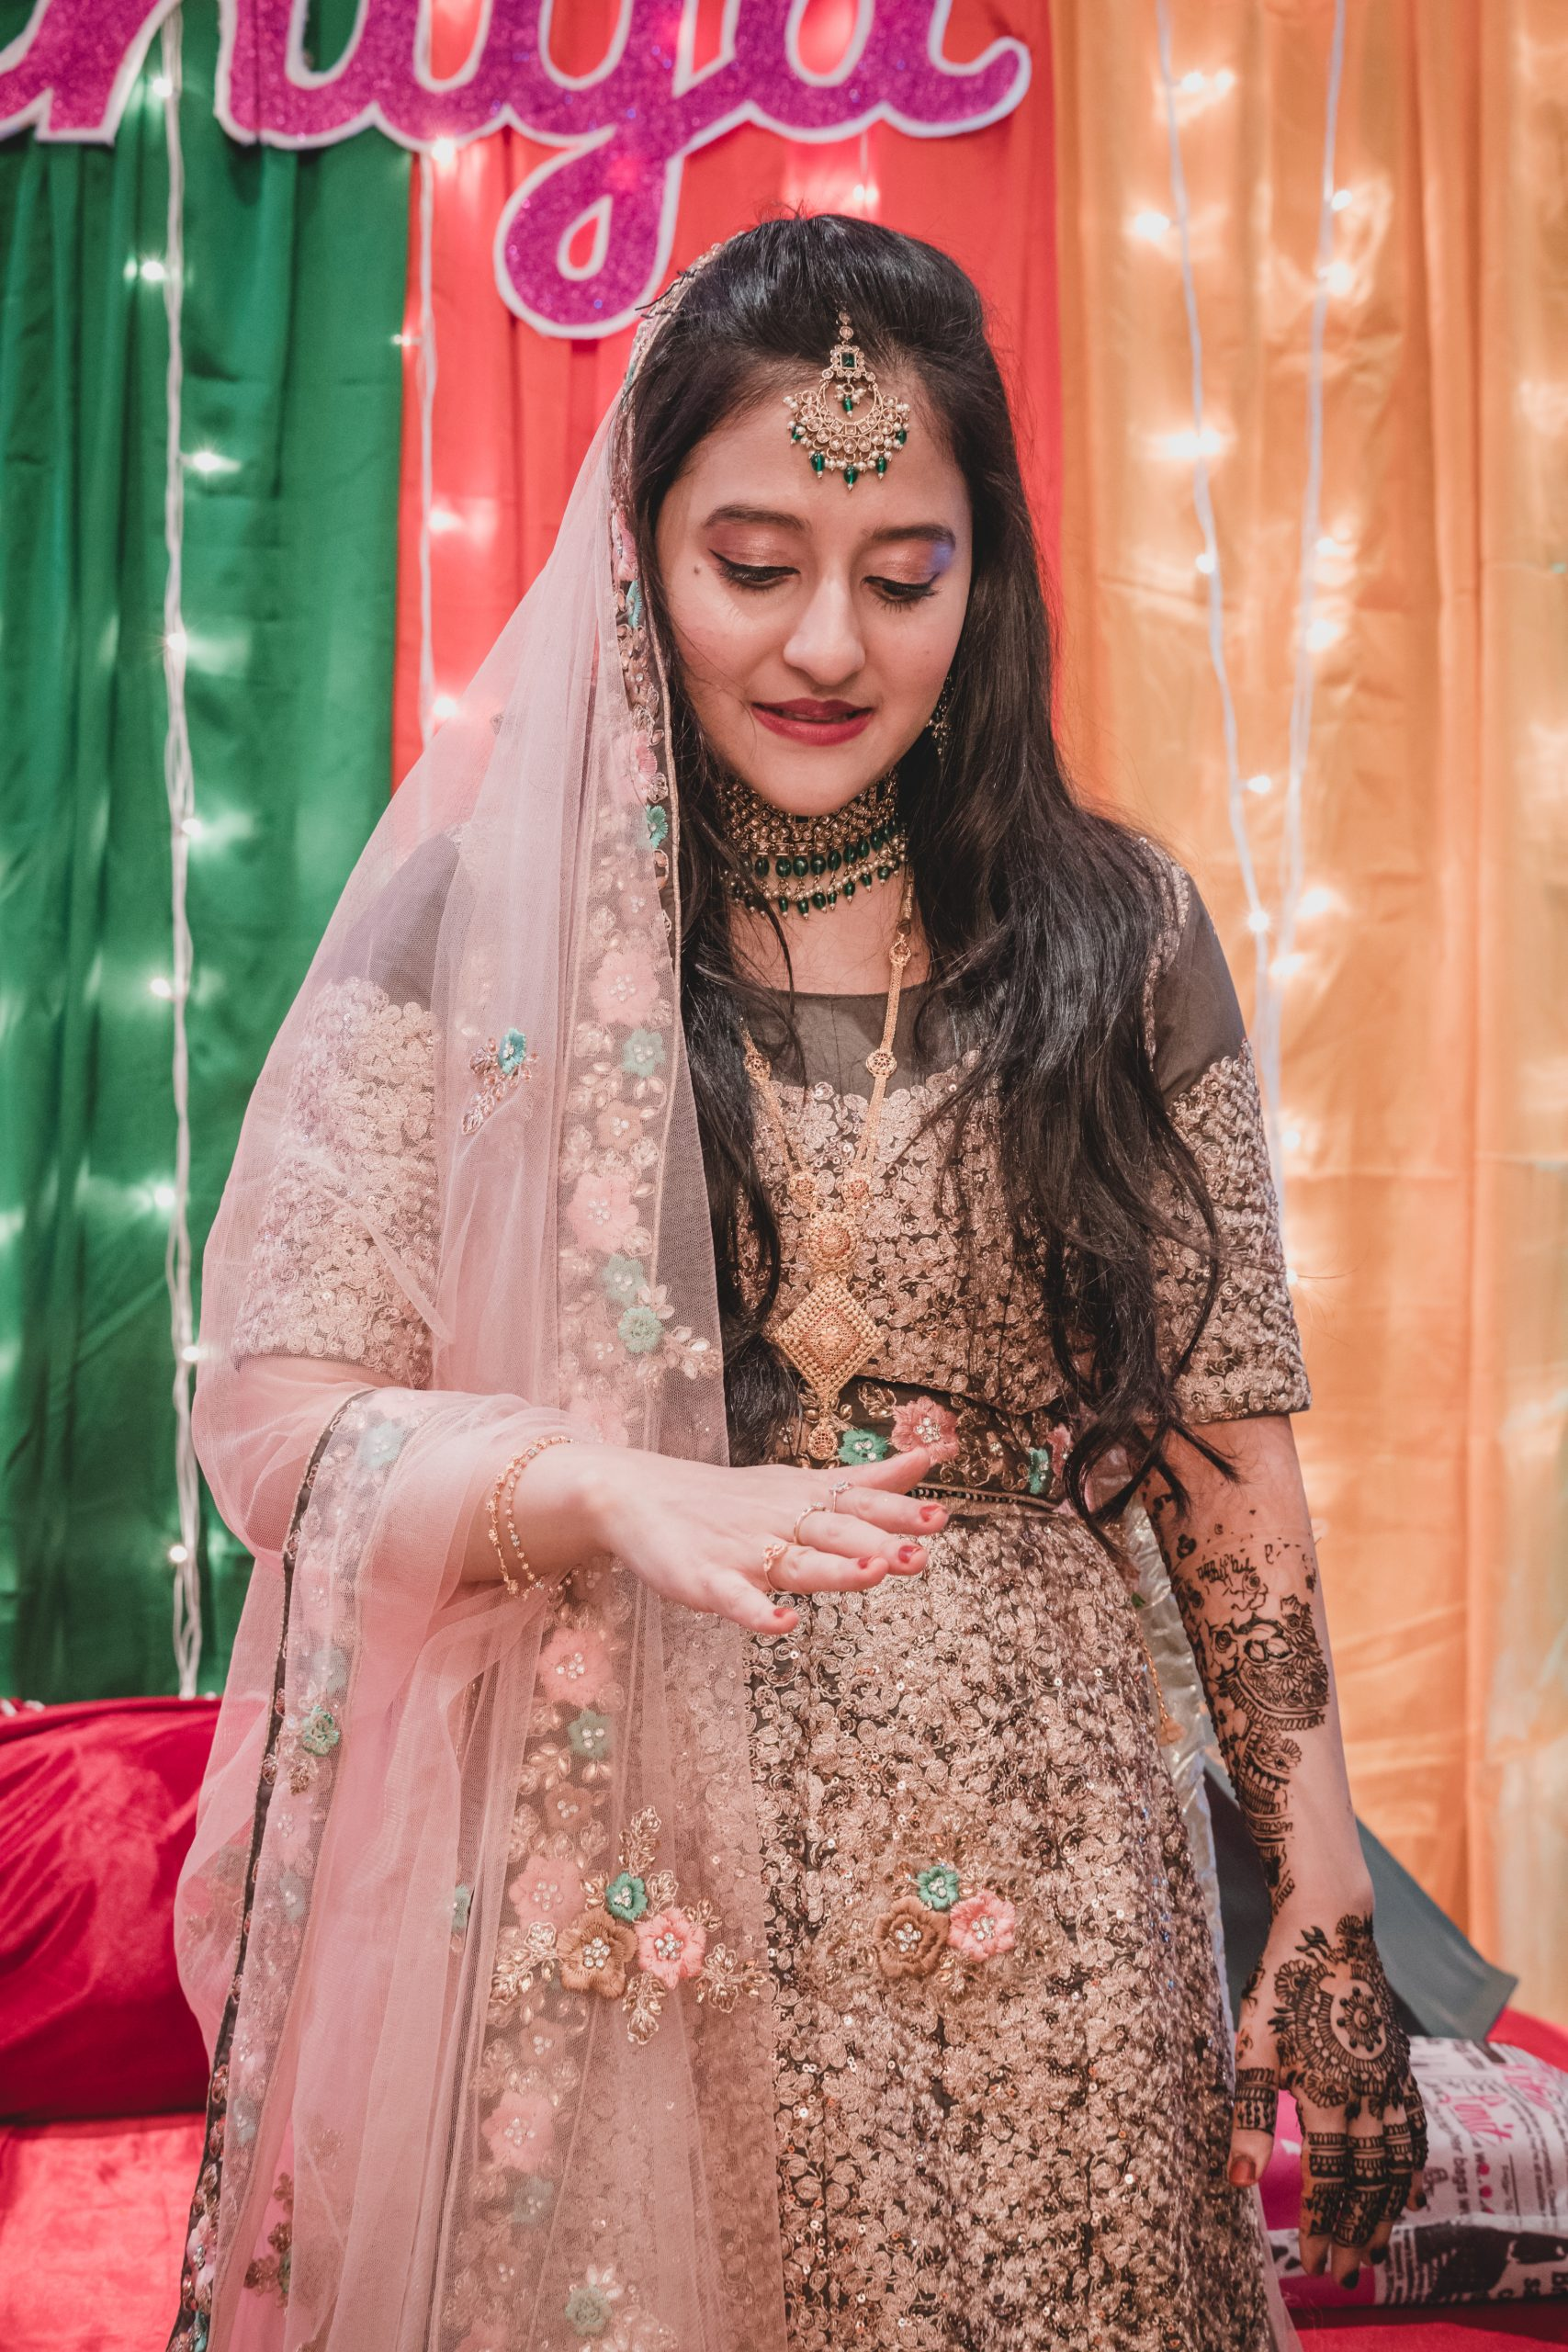 An Indian bride